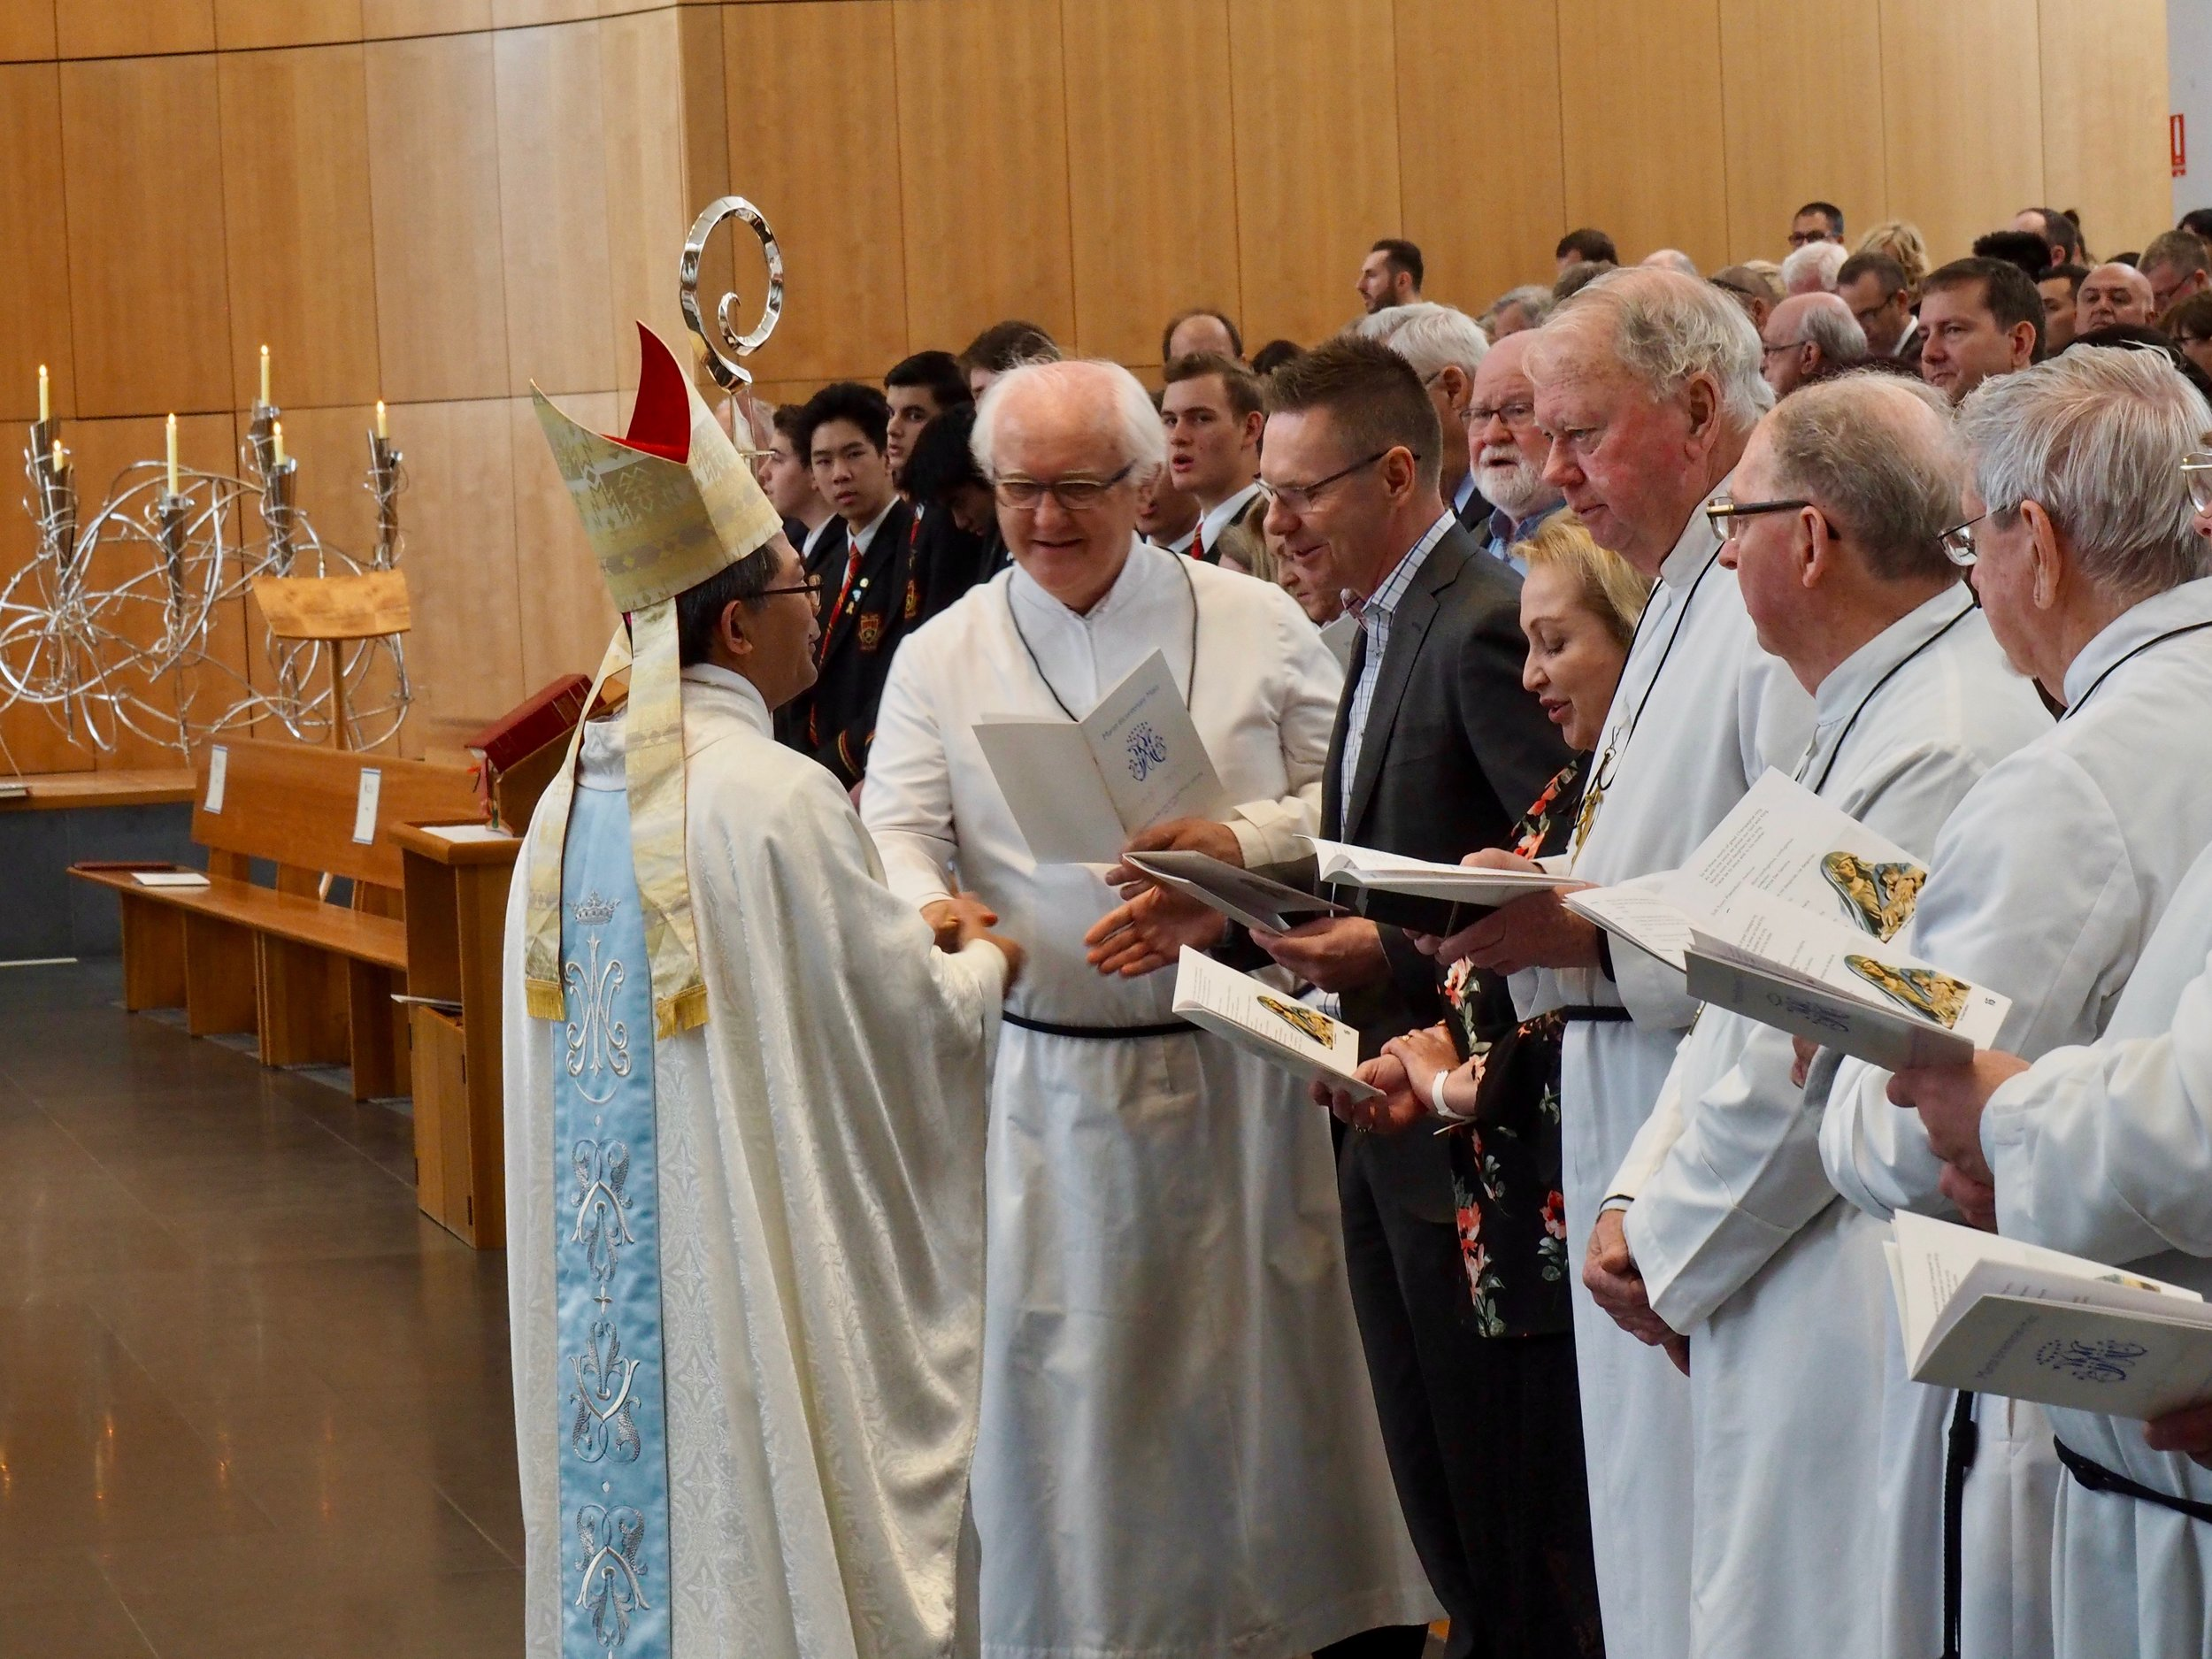 Bicentenary Mass Sydney 12 Aug 2017 Photos by Paul Harris 00108.jpg